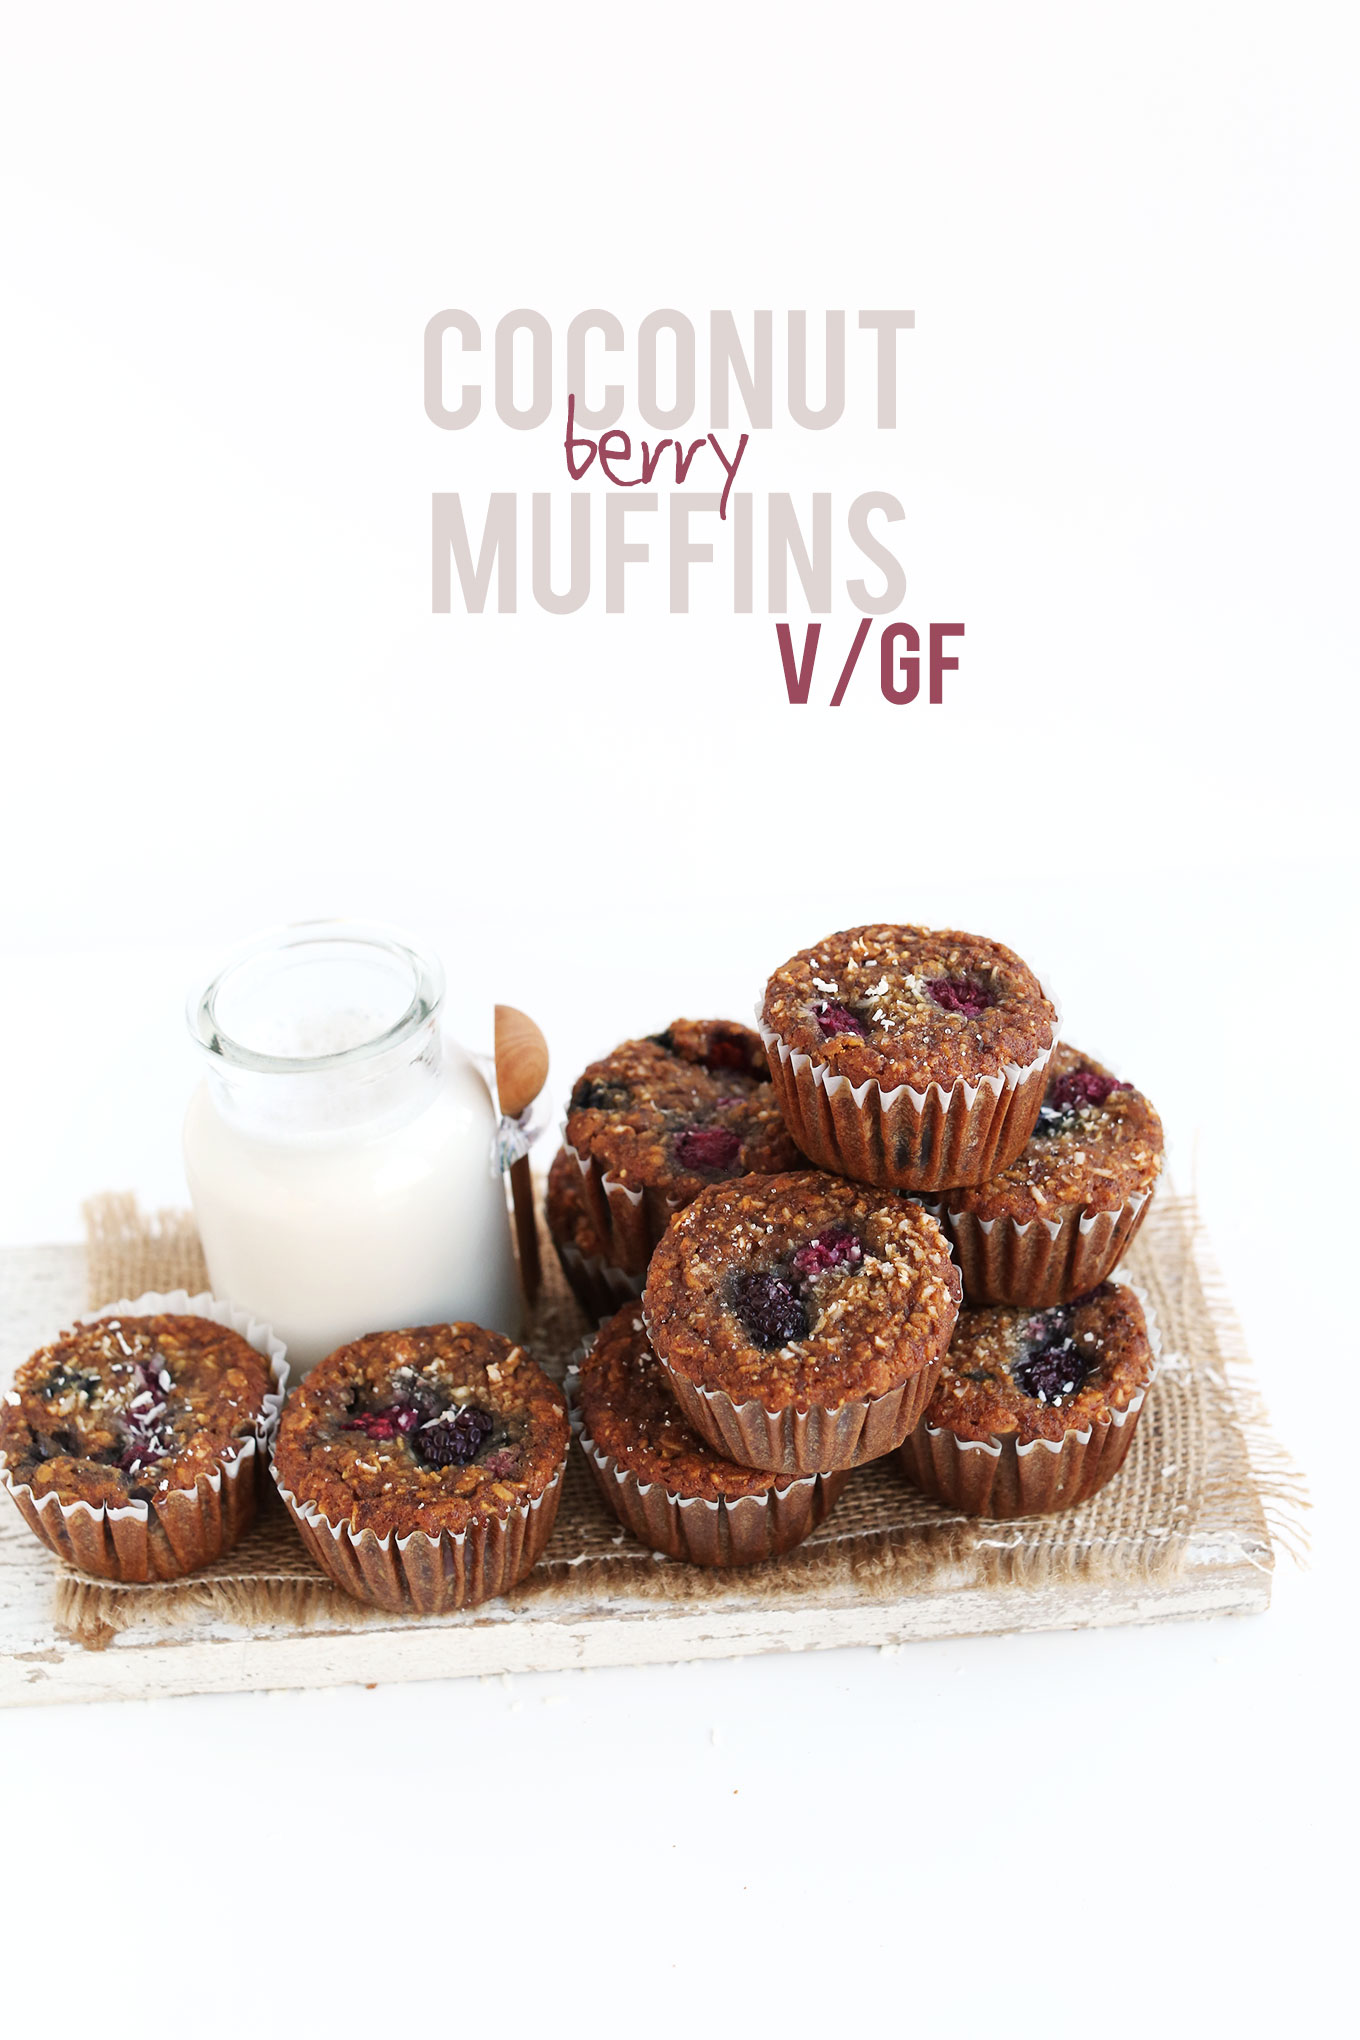 Wood cutting board with a batch of our Coconut Berry Muffins and a glass of almond milk